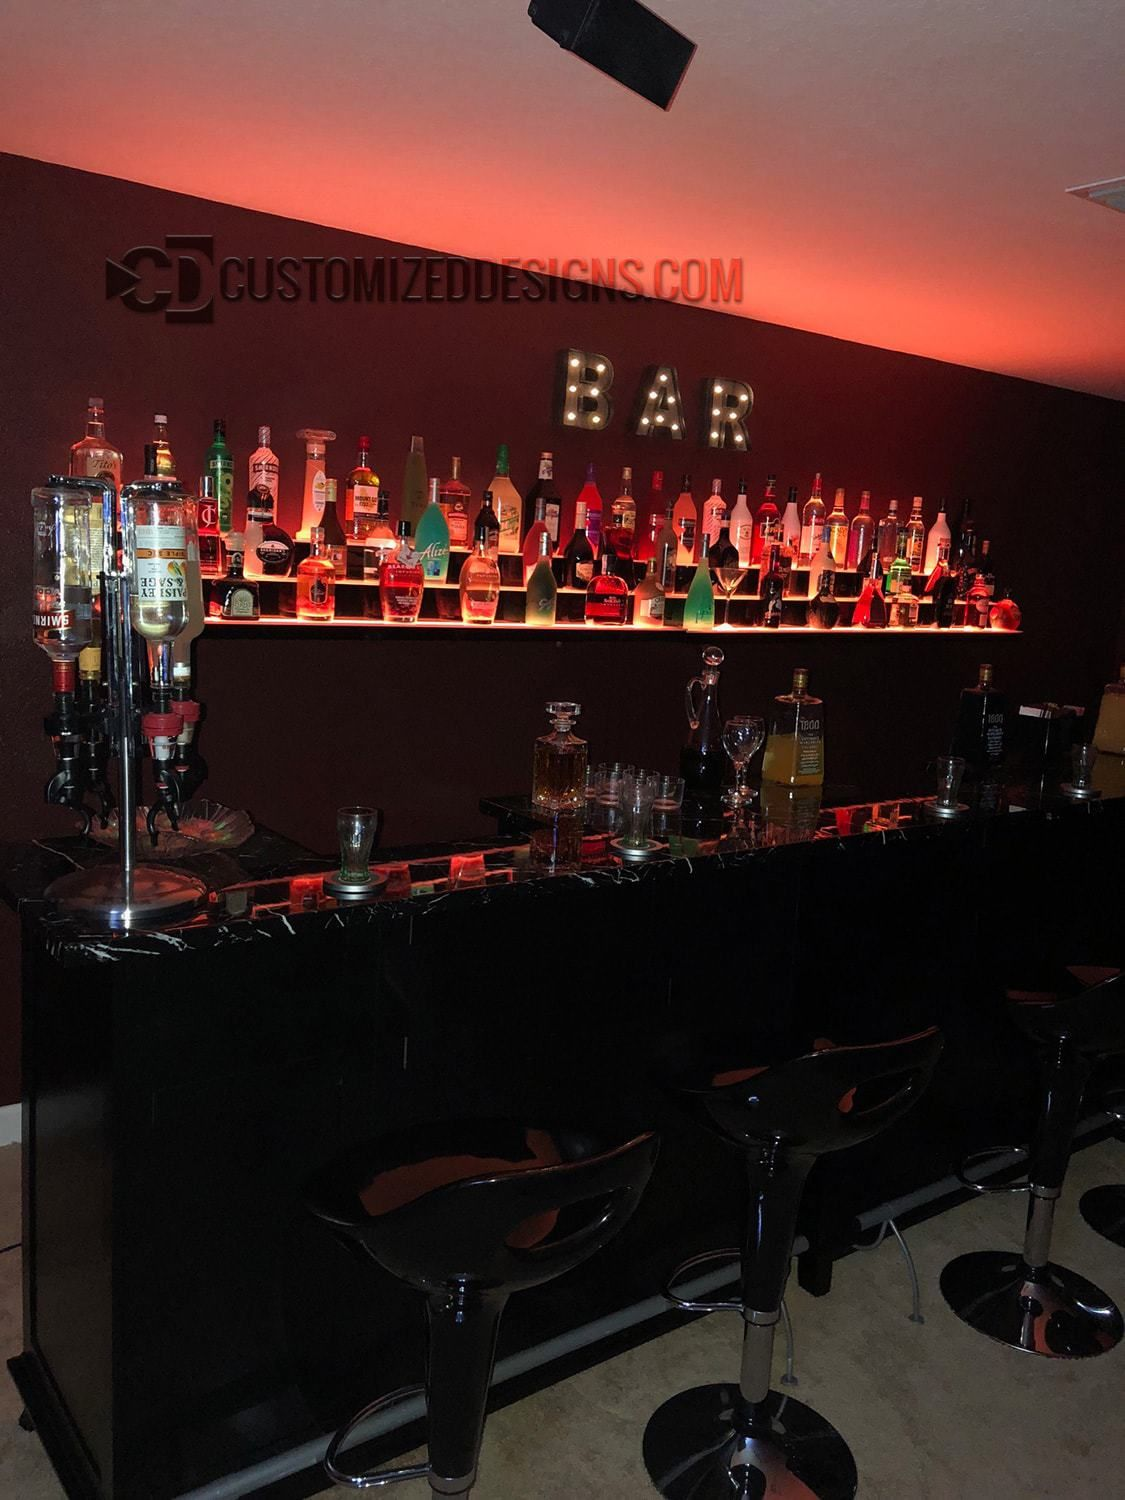 200 Home Bar Ideas Home Bar Designs Home Bar Bar Design